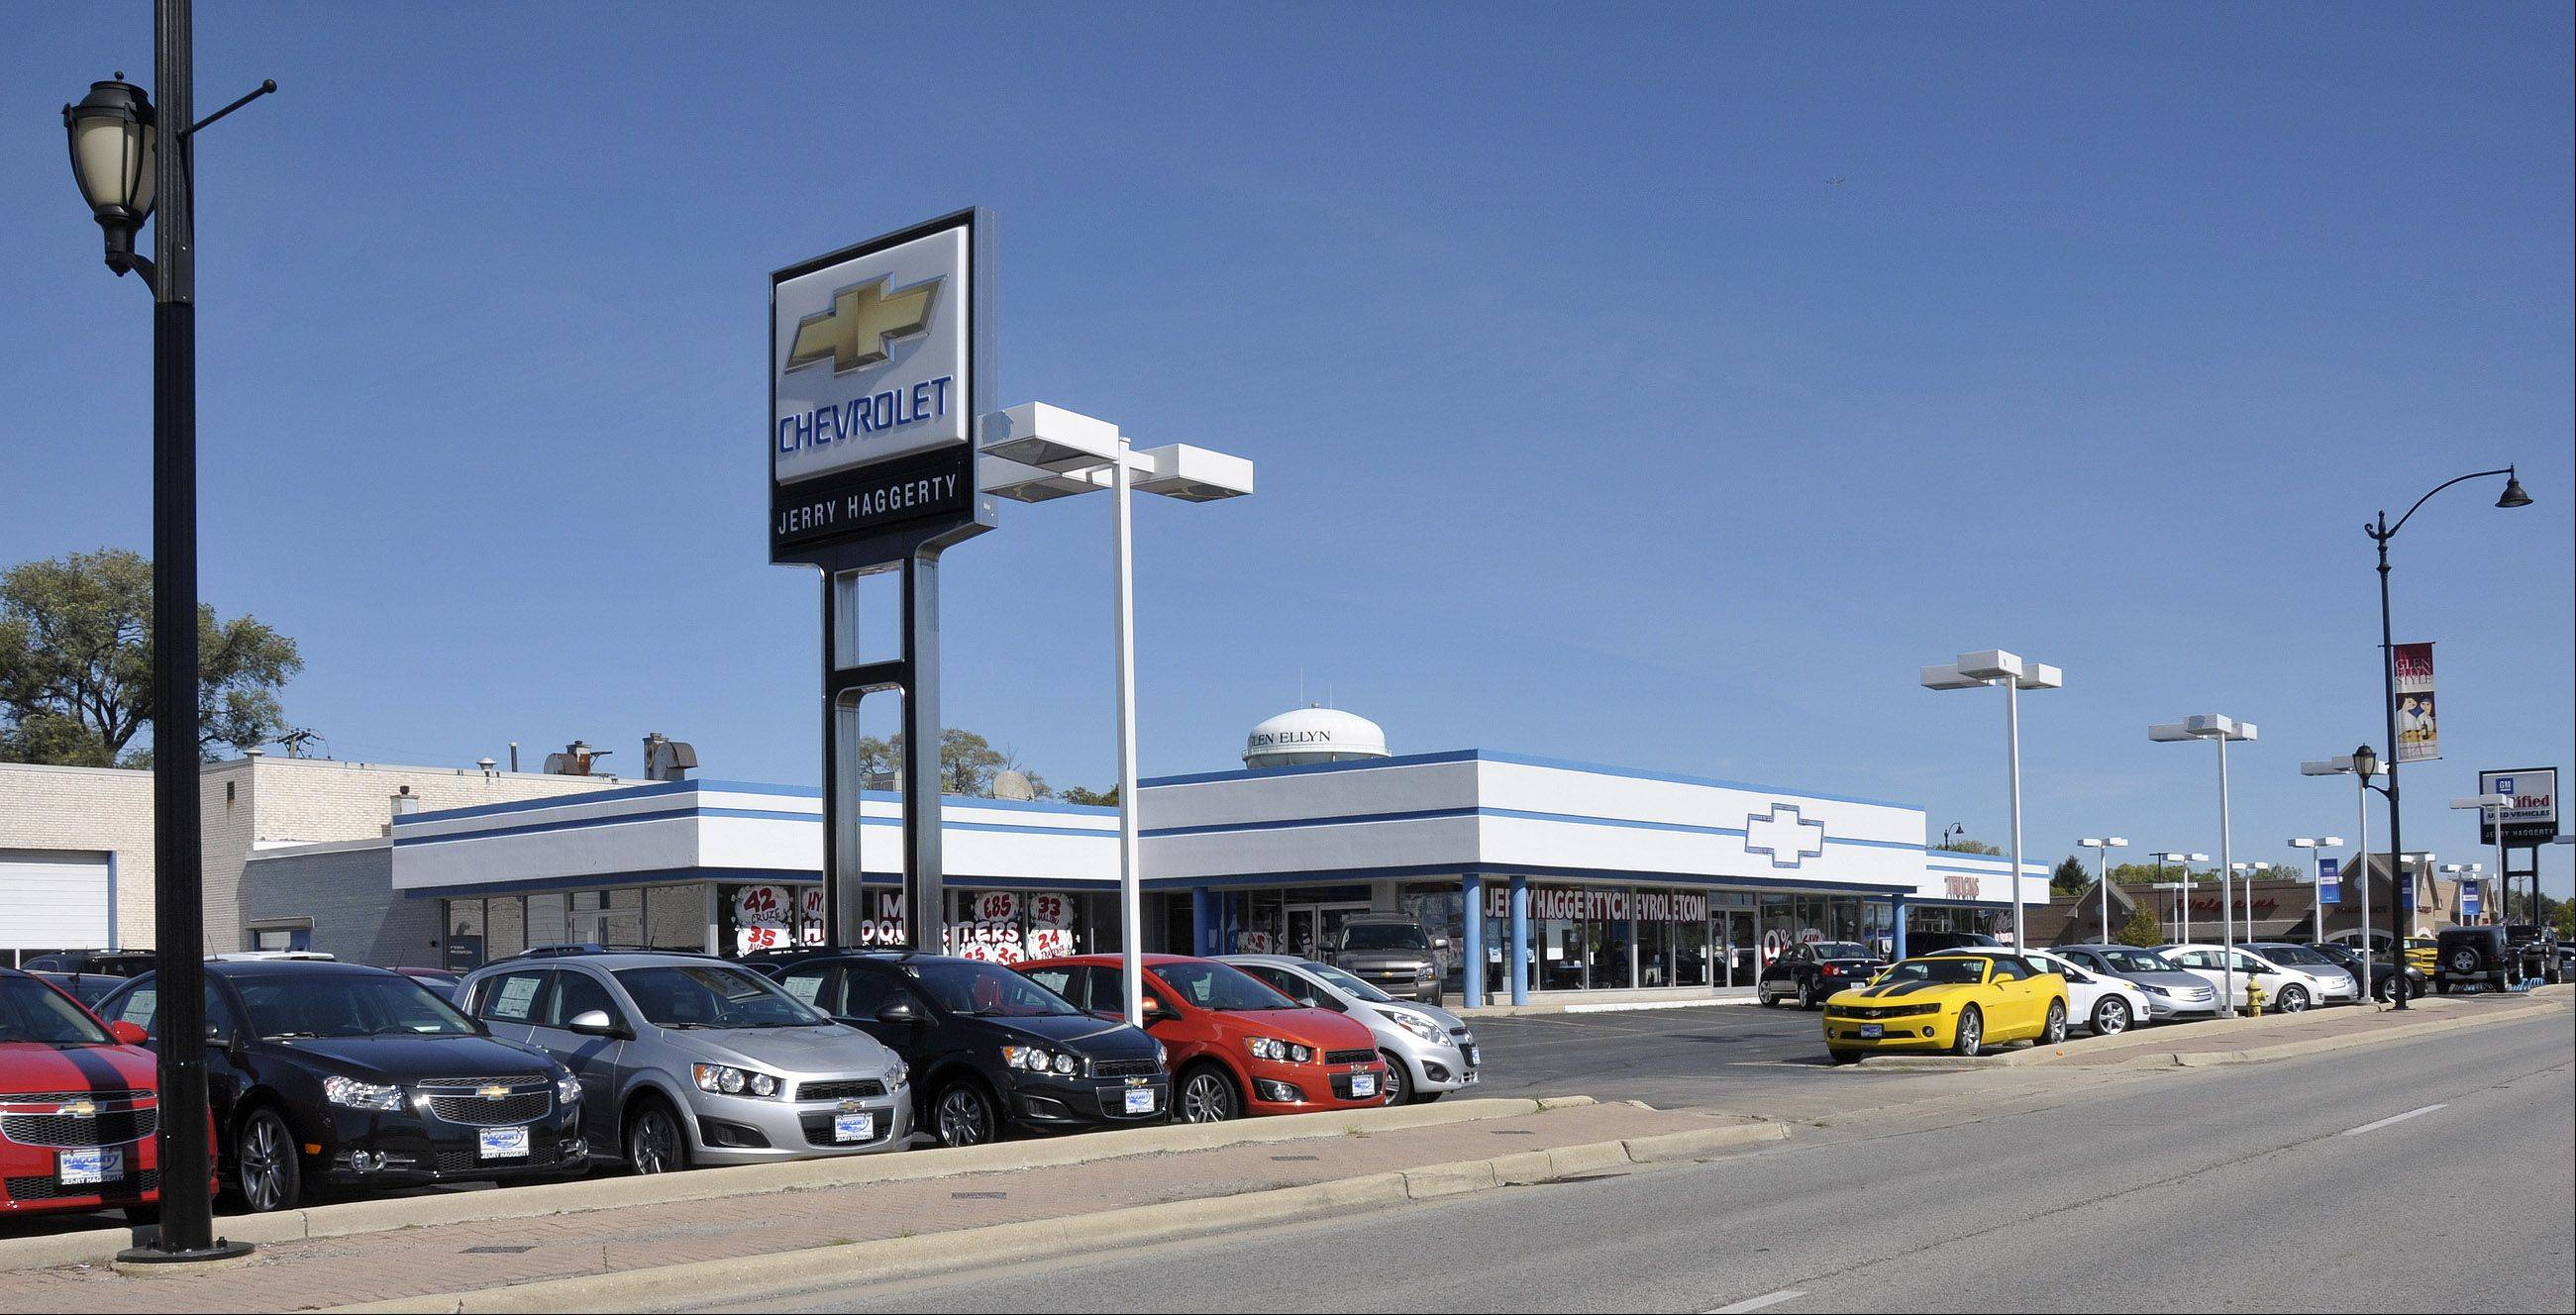 A sales tax sharing agreement approved Monday by the Glen Ellyn village board could allow Jerry Haggerty Chevrolet at 300 Roosevelt Road to collect up to $850,000. The funds will be used to pay for some $1.5 million in facility upgrades mandated by General Motors, Haggerty said.